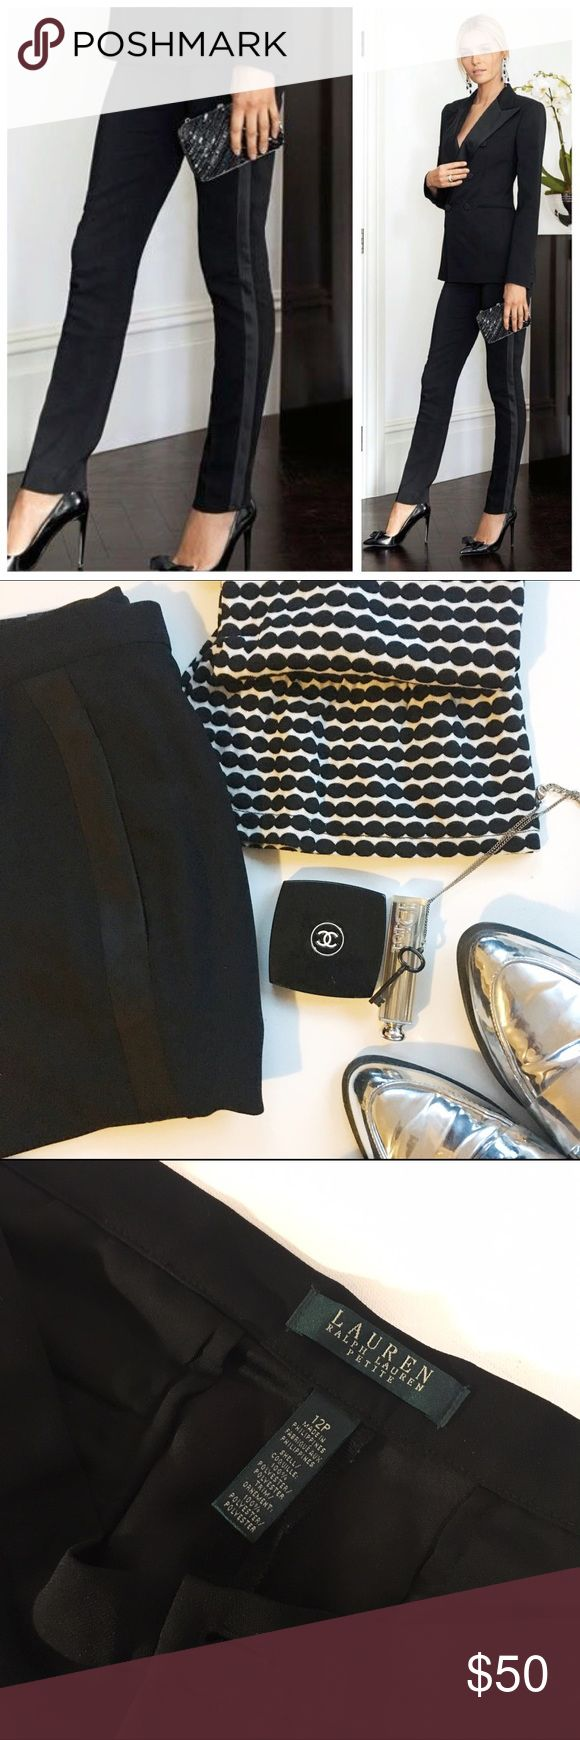 Ralph Lauren Petite Silk trim fitted tuxedo pants Lovely but unfortunately to small for me, perfect pants to wear anywhere! With heels for a killer look , trainers or even flip flops for a casual look  Lauren Ralph Lauren Pants Trousers